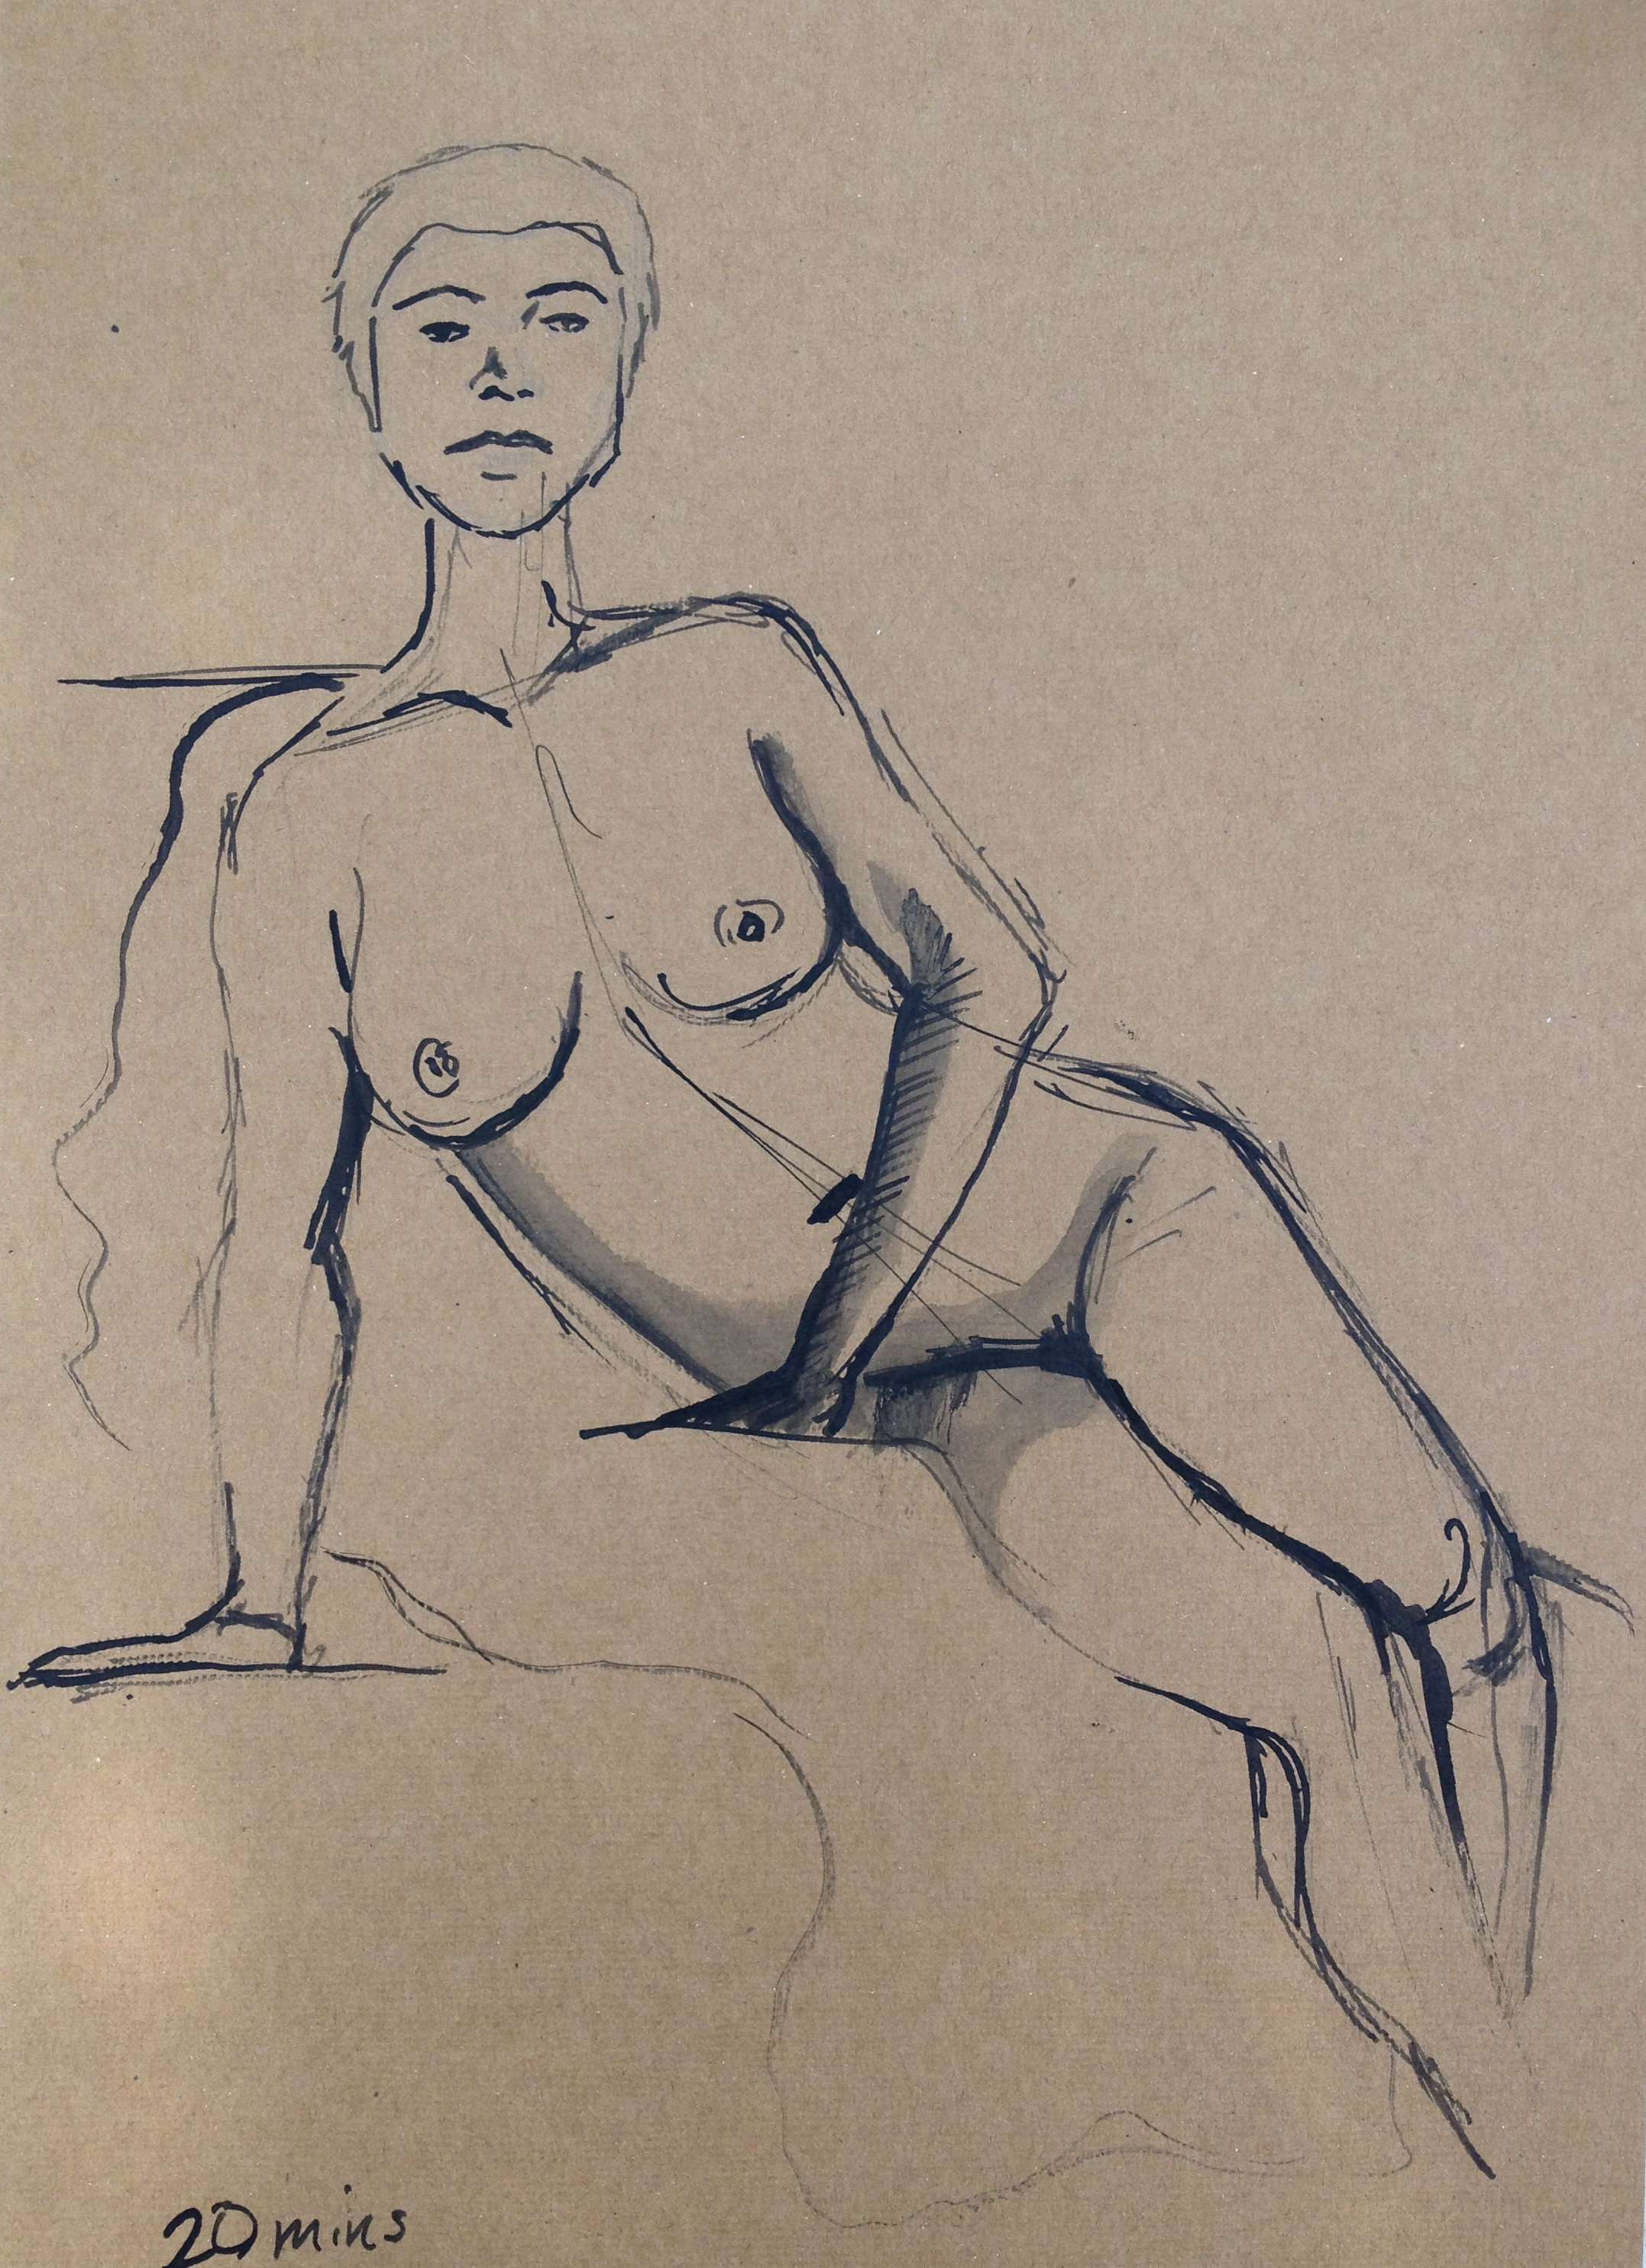 Semi reclining_Ink 20mins